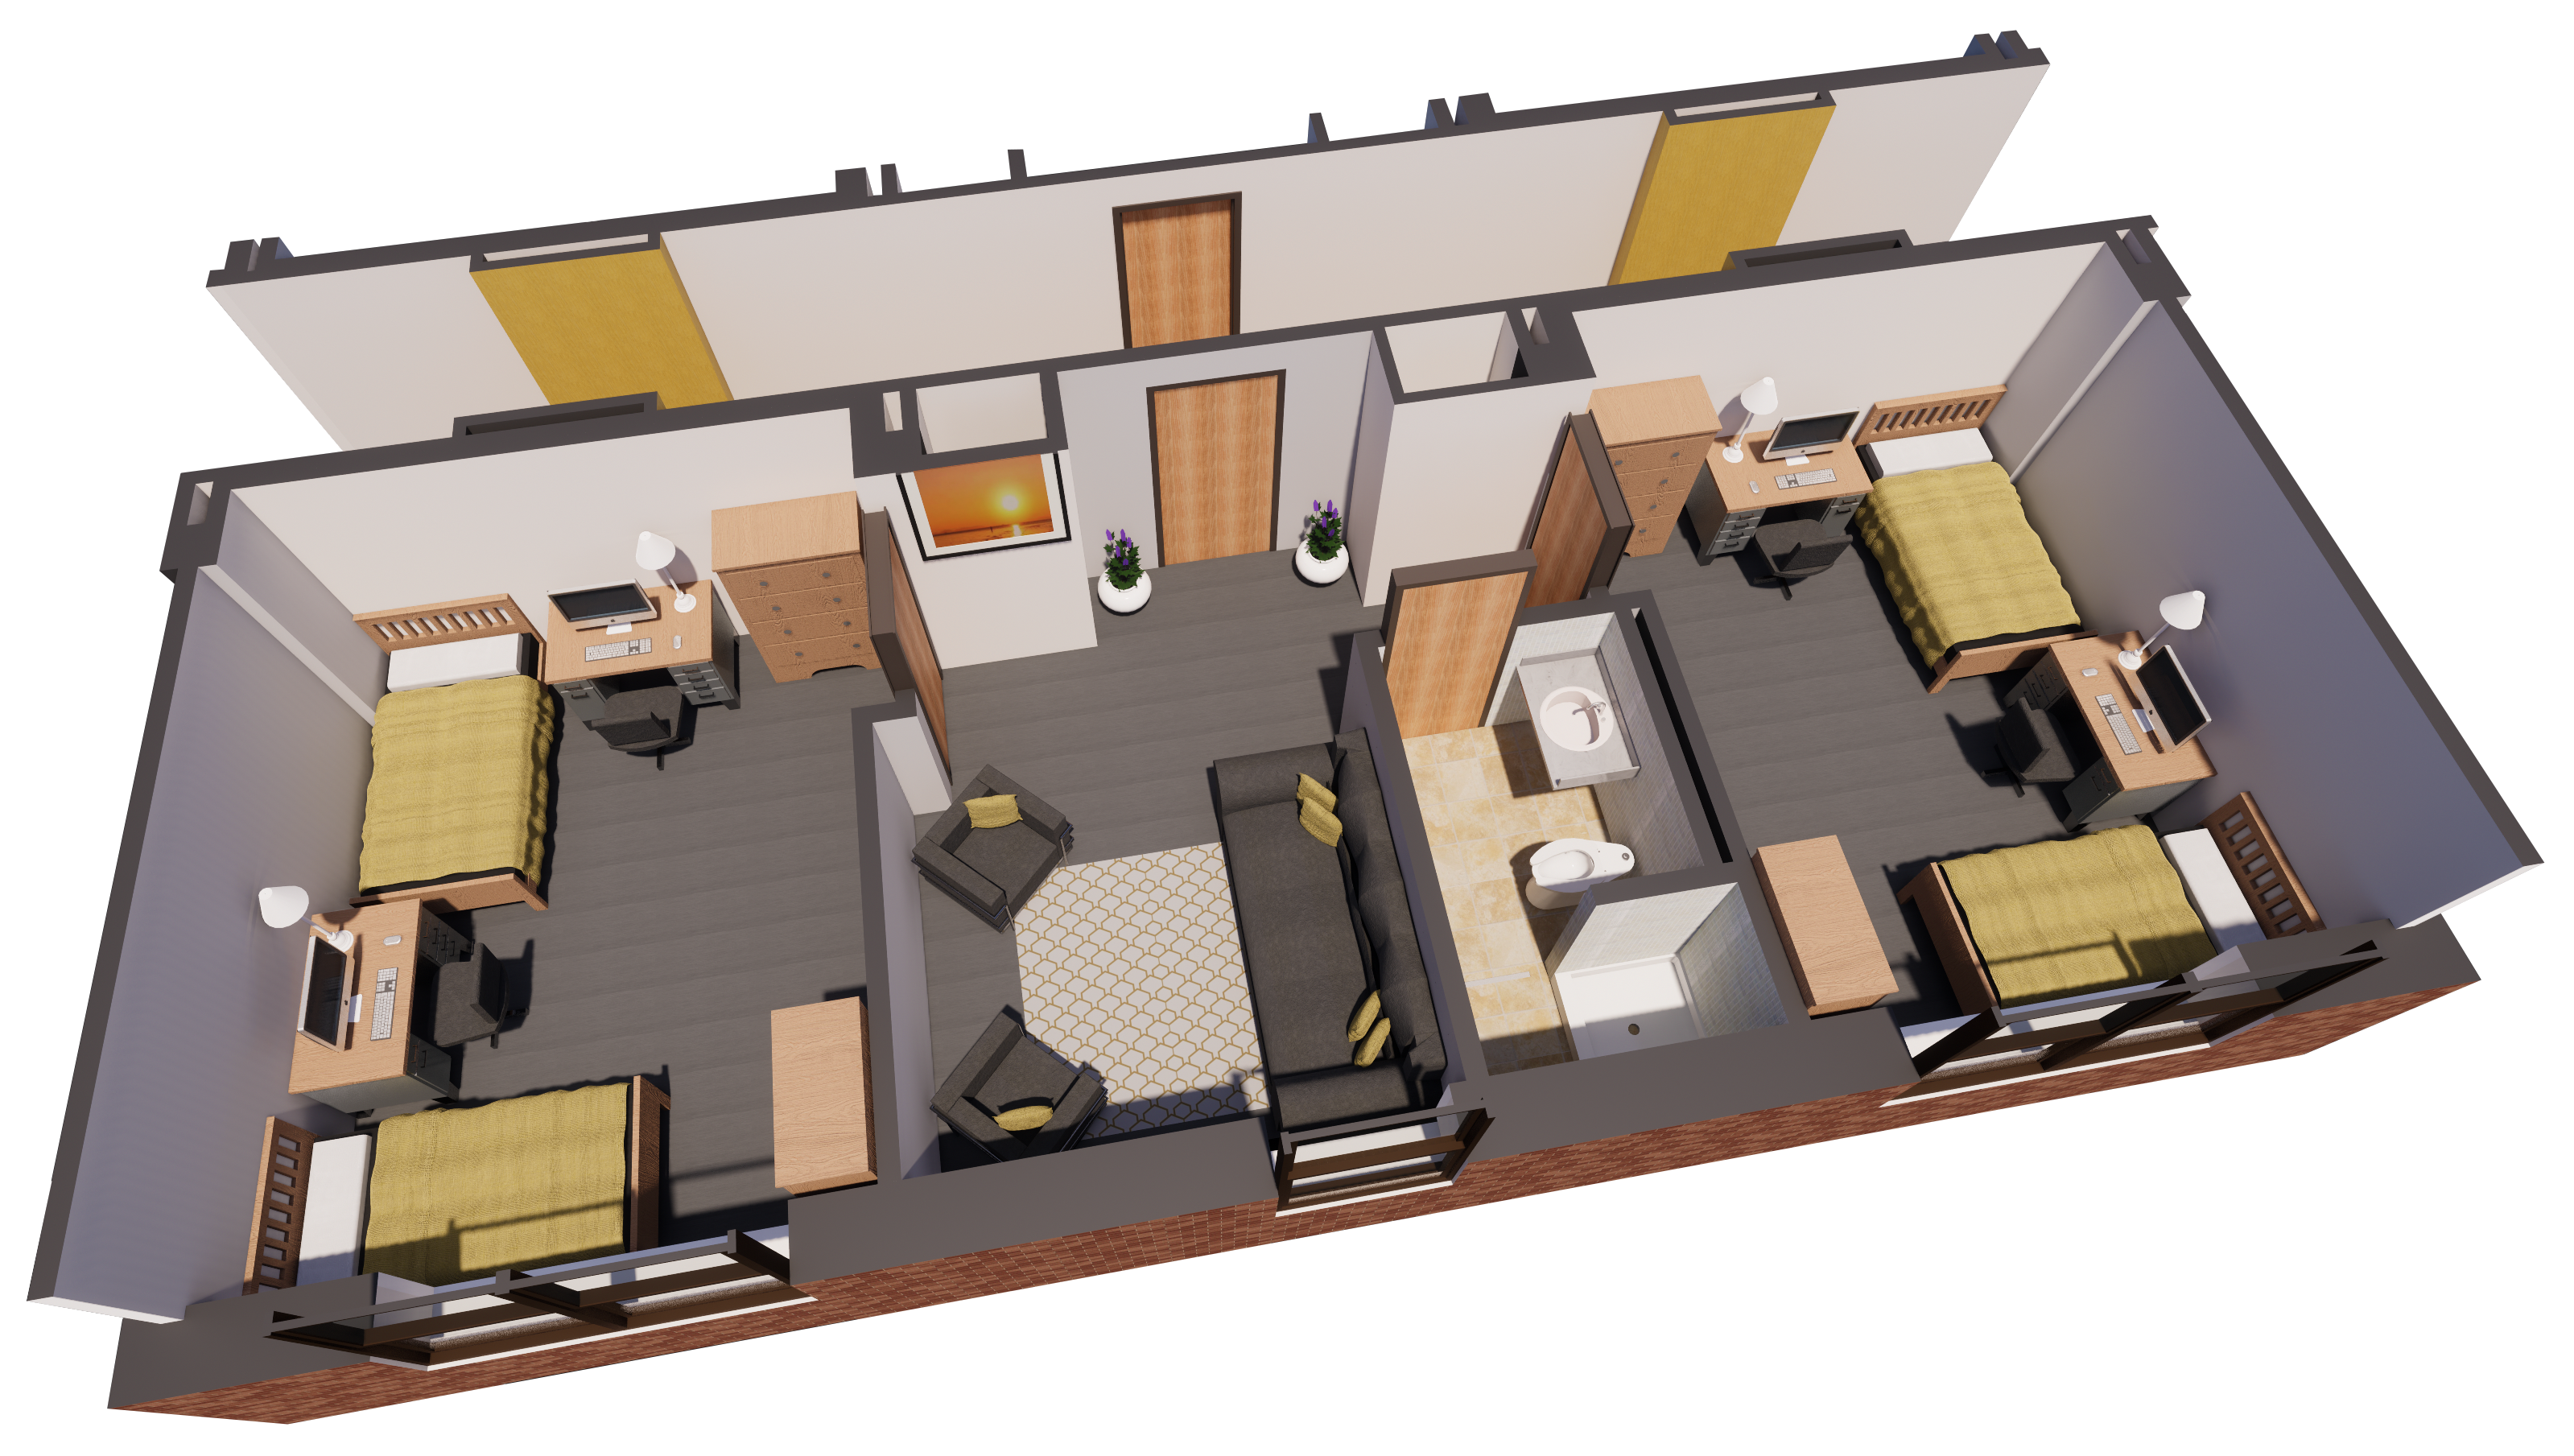 3D rendering of room